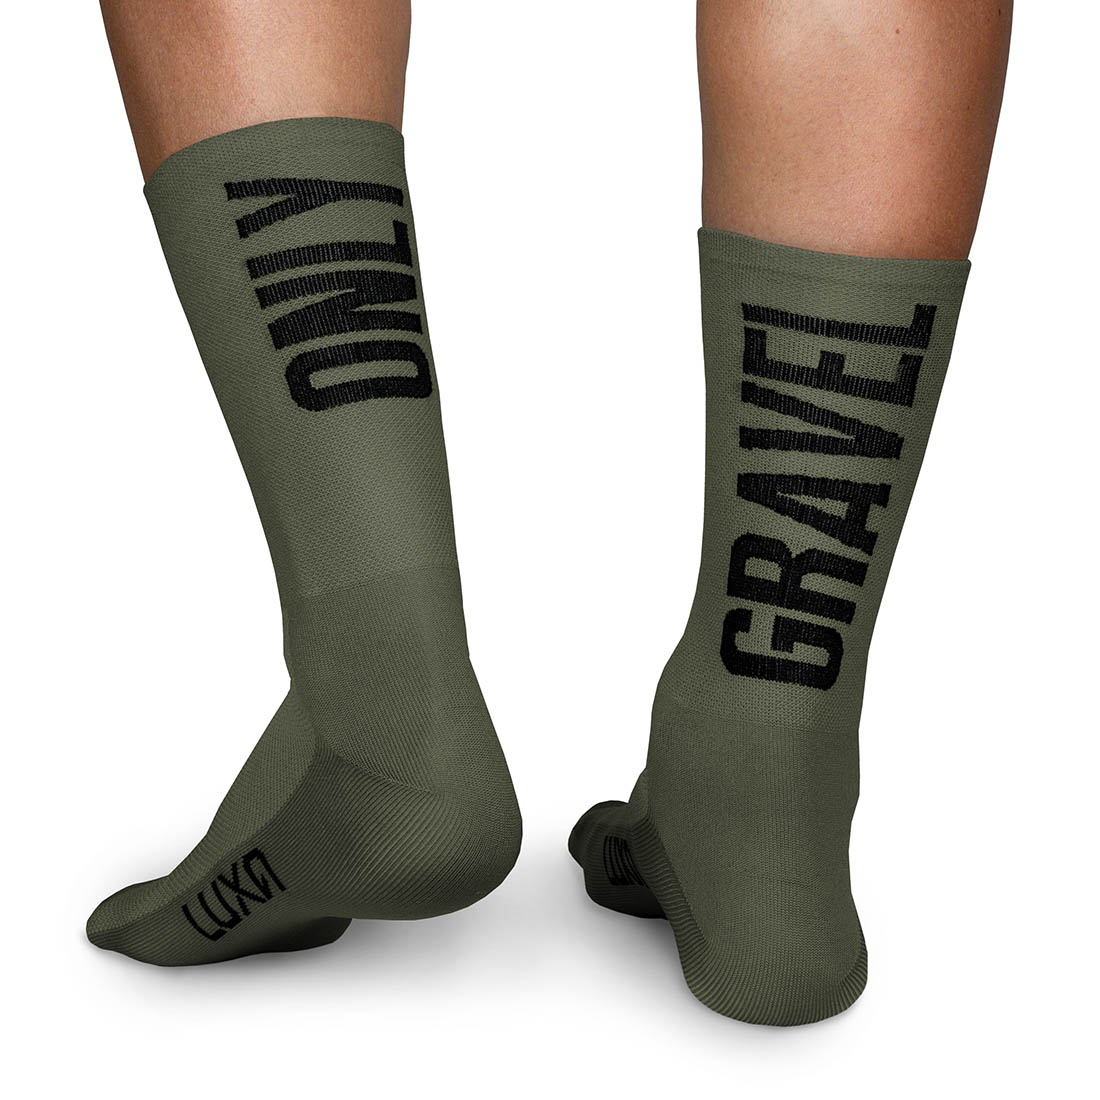 gravel cycling socks in khaki yarn color made by Luxa